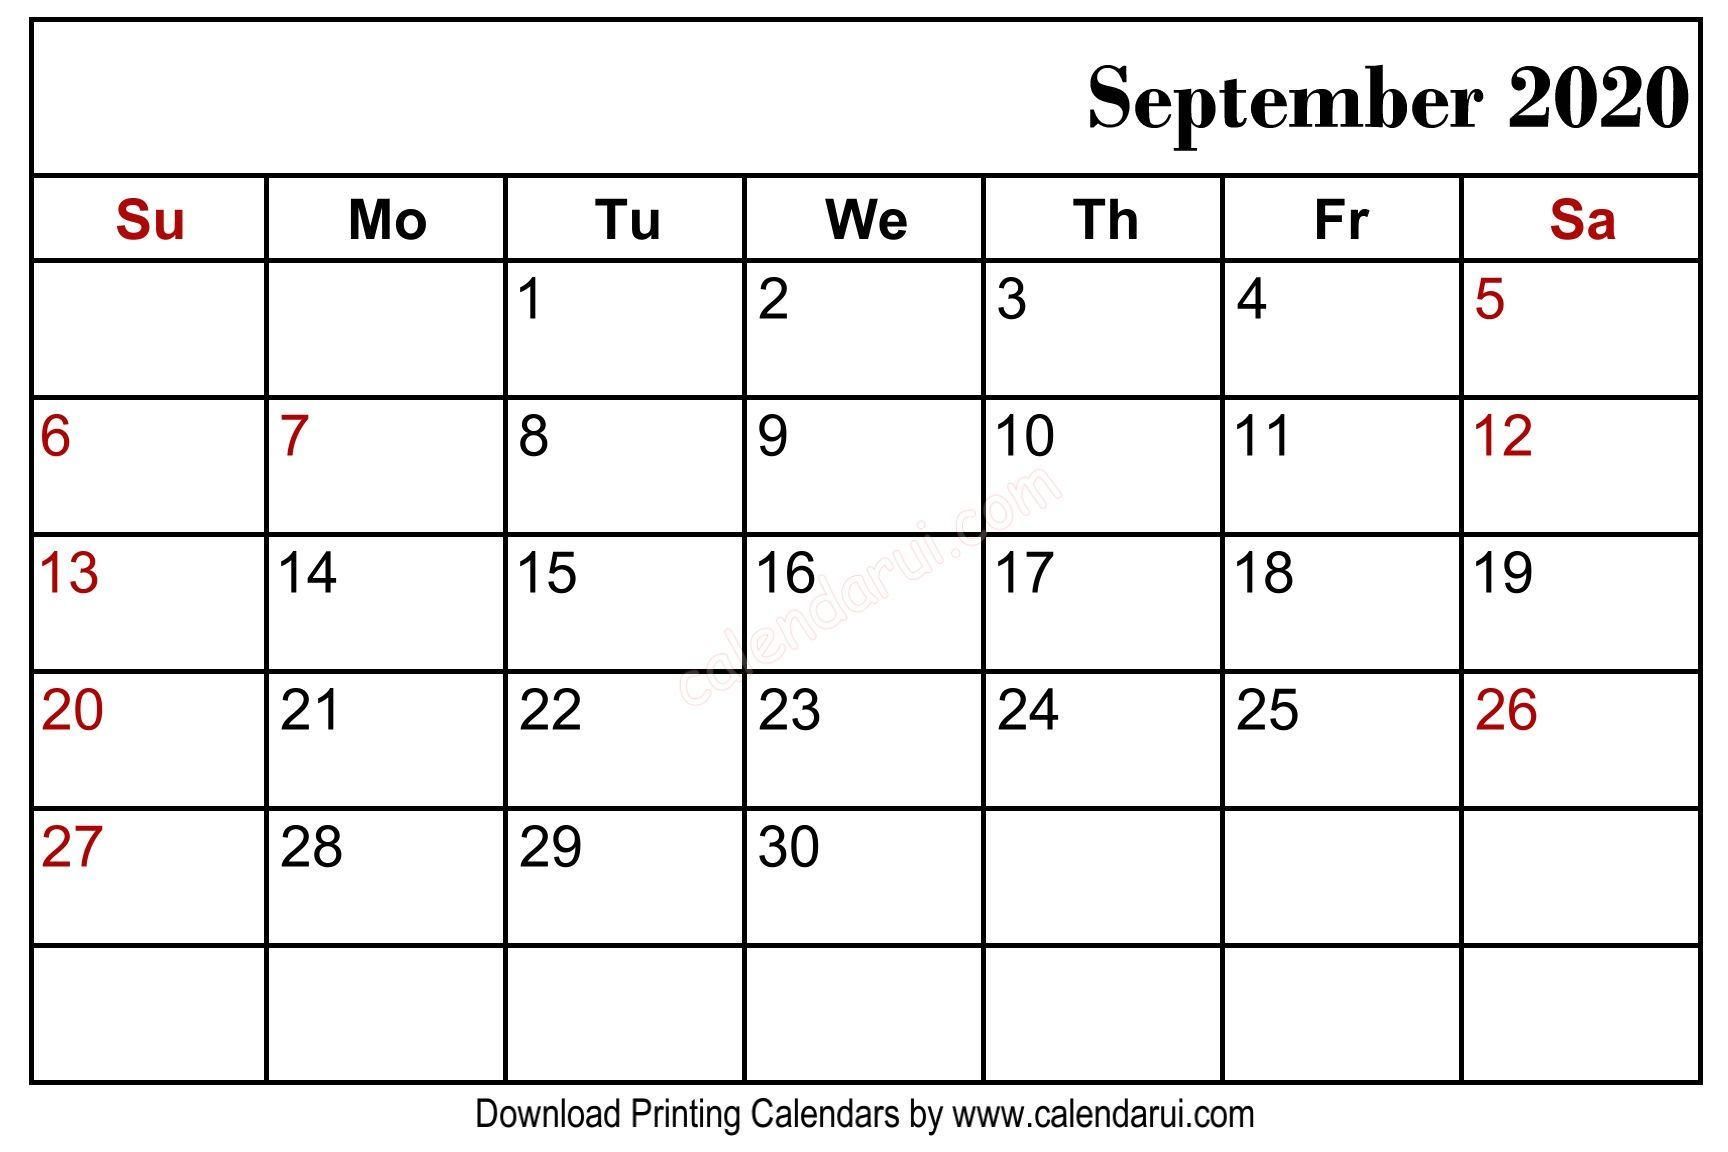 September 2020 Blank Calendar Printable Free Download for Malayalam Calendar September 2020